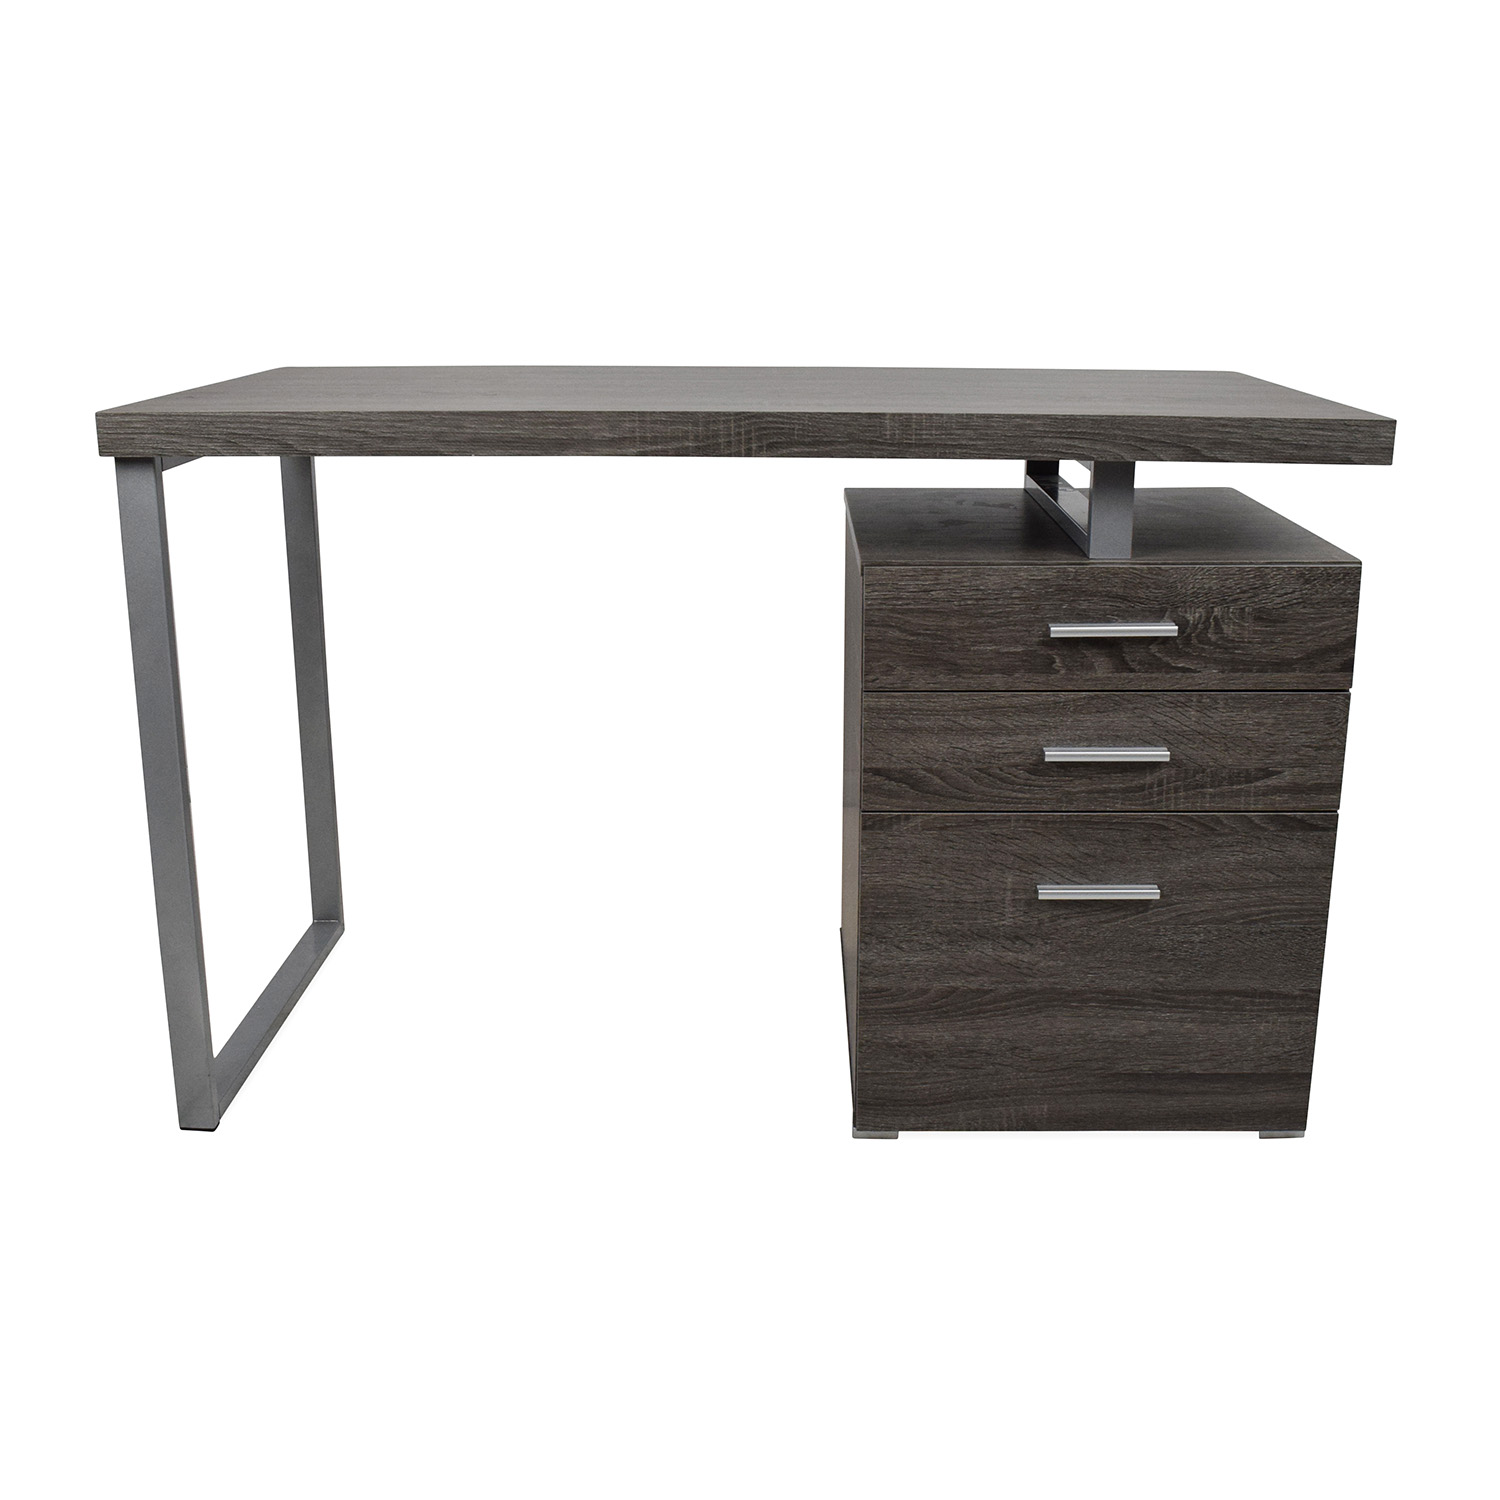 keen designed of and desk shop furniture steel upright constructed standing by locus focal martin is aluminum